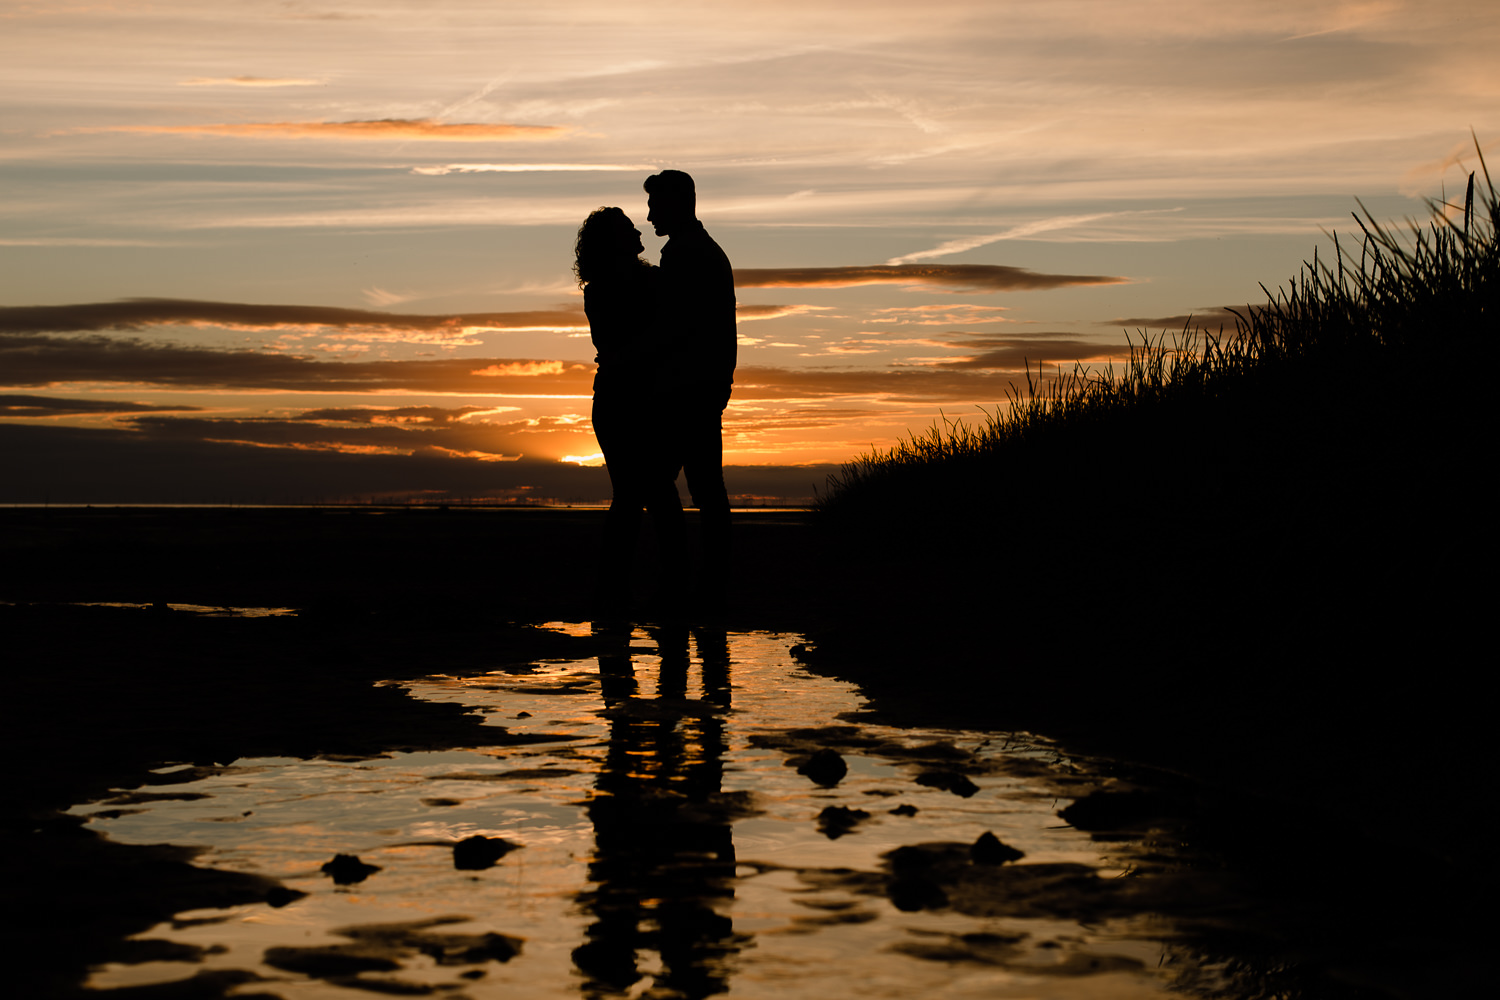 Sunset Pre Wedding Shoot, a couple silhouetted against the colourful sky and their reflection on the wet beach - Merseyside Wedding Photographers